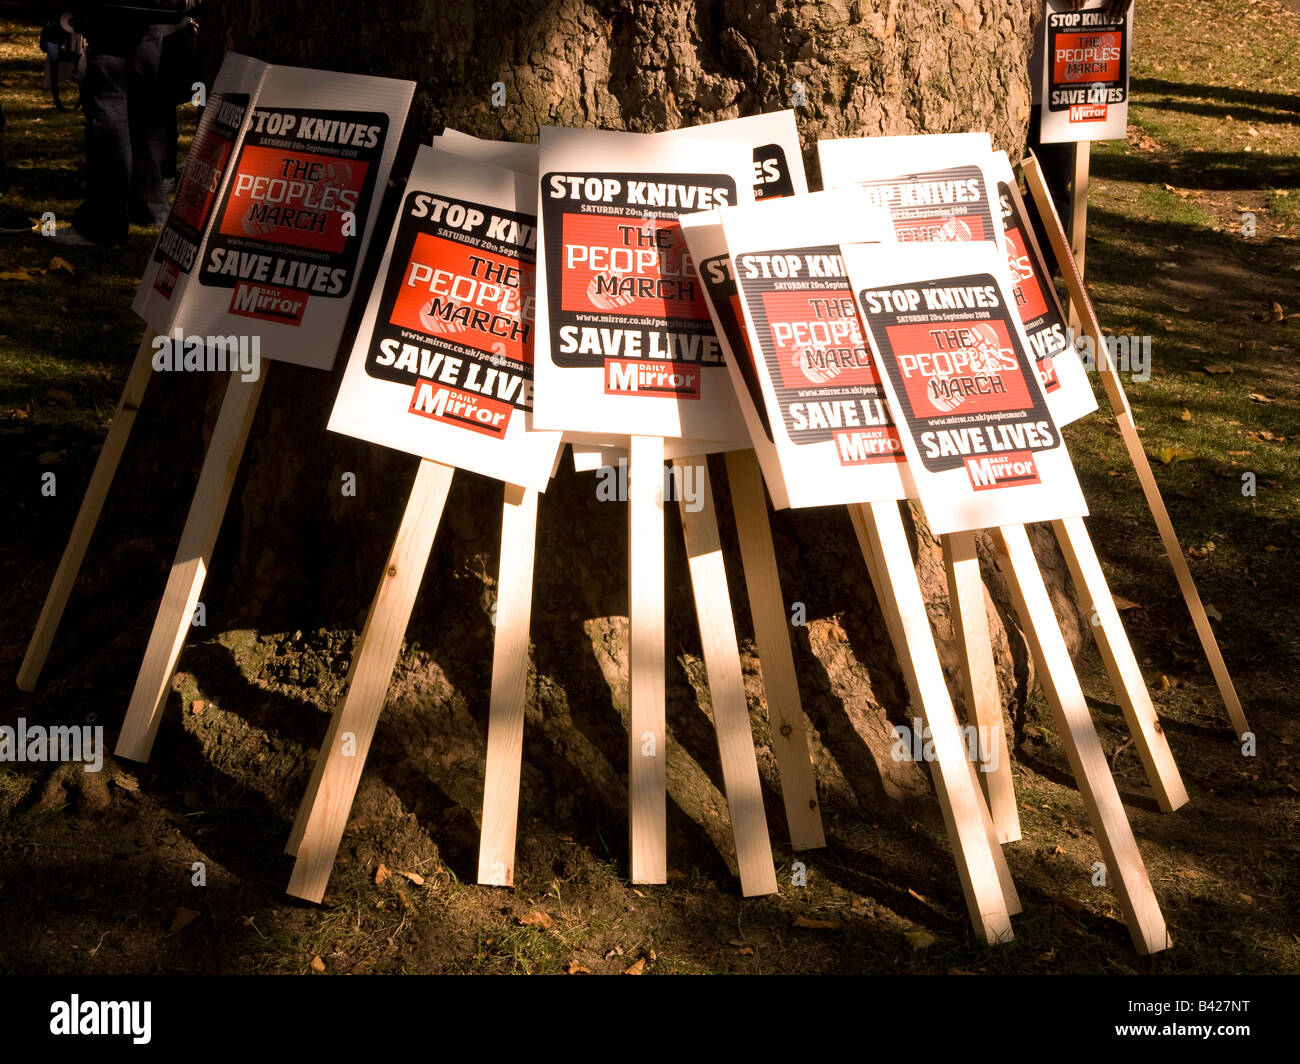 Placards at The People s March, Saturday 20 Sept 2008. March and demo against knife crime, London, UK. - Stock Image